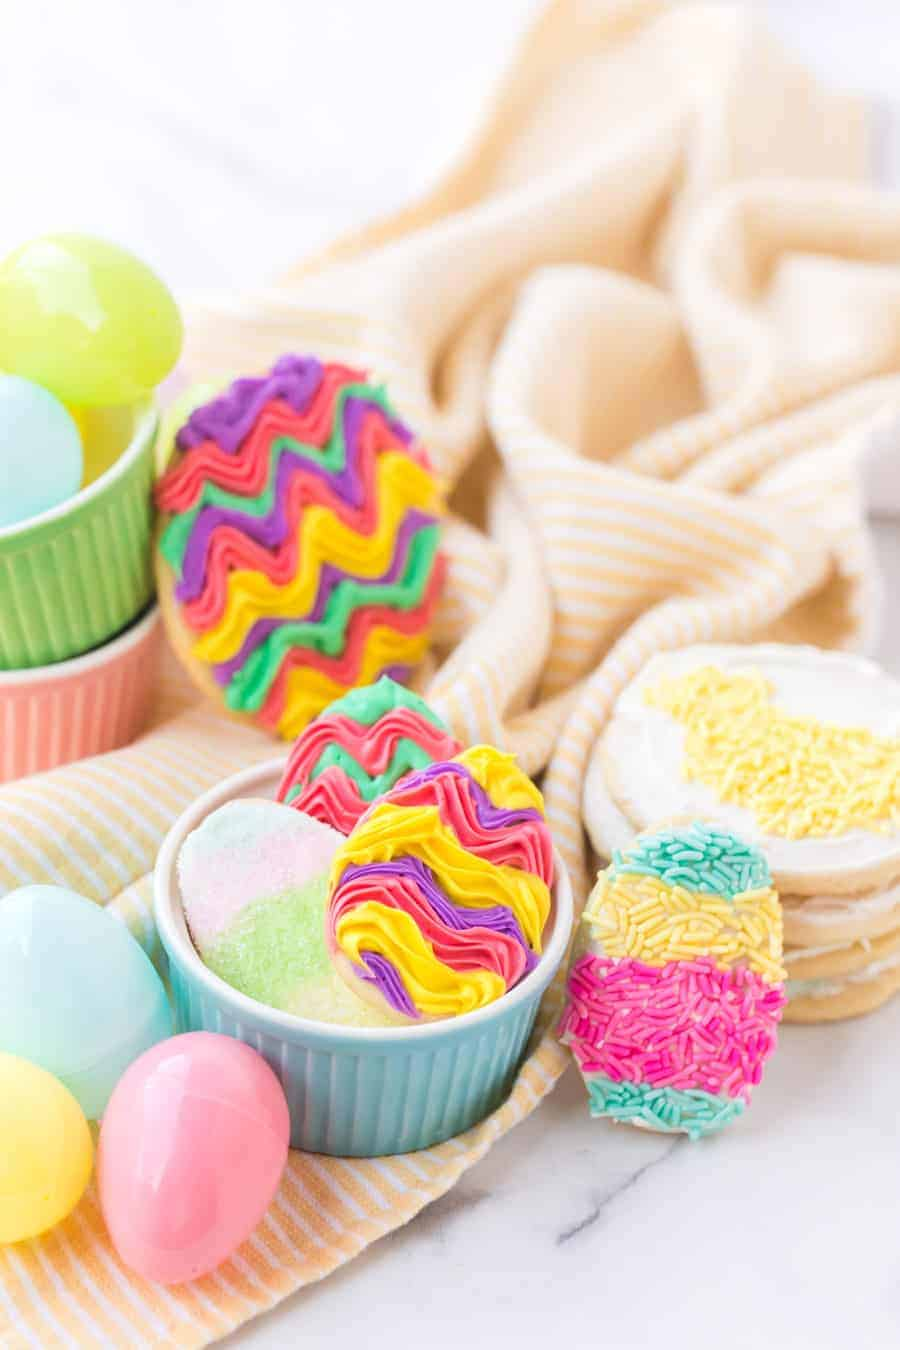 long image of iced sugar cookies and cookies with sprinkles in ramekins with plastic easter eggs on yellow and white striped towel